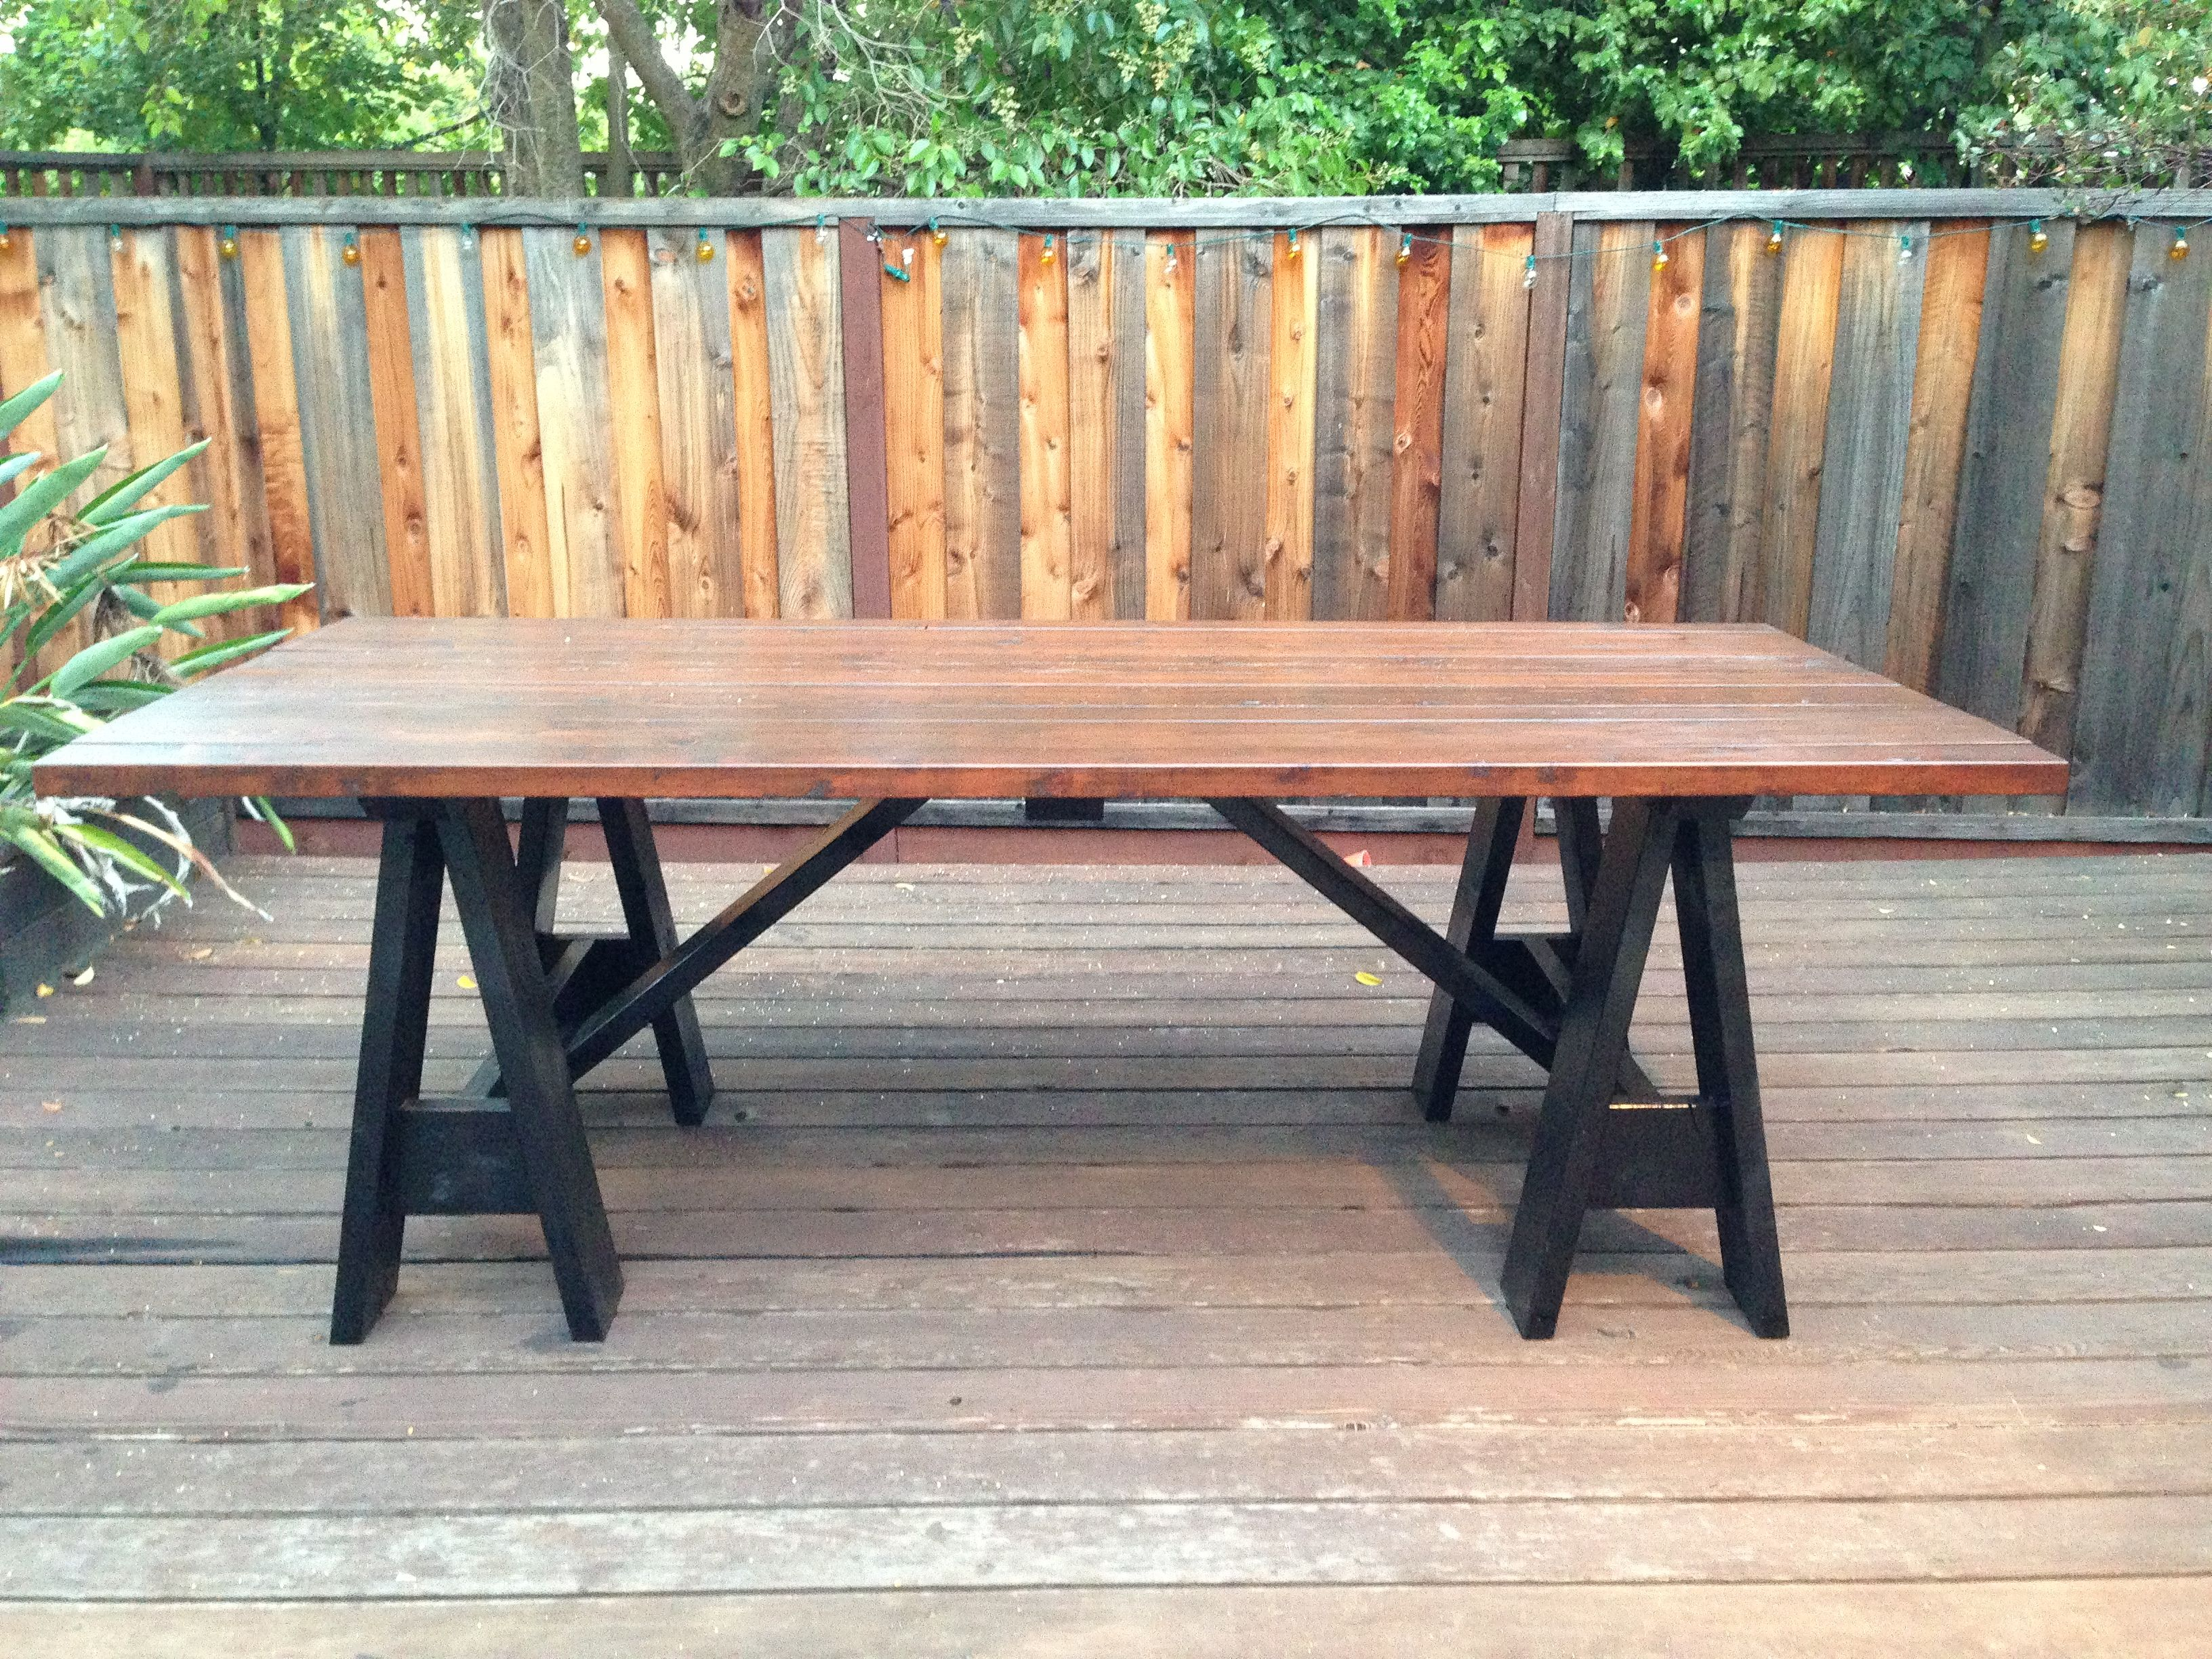 Sawhorse outdoor table by my lyon men do it yourself home projects sawhorse outdoor table by my lyon men do it yourself home projects from ana white solutioingenieria Image collections